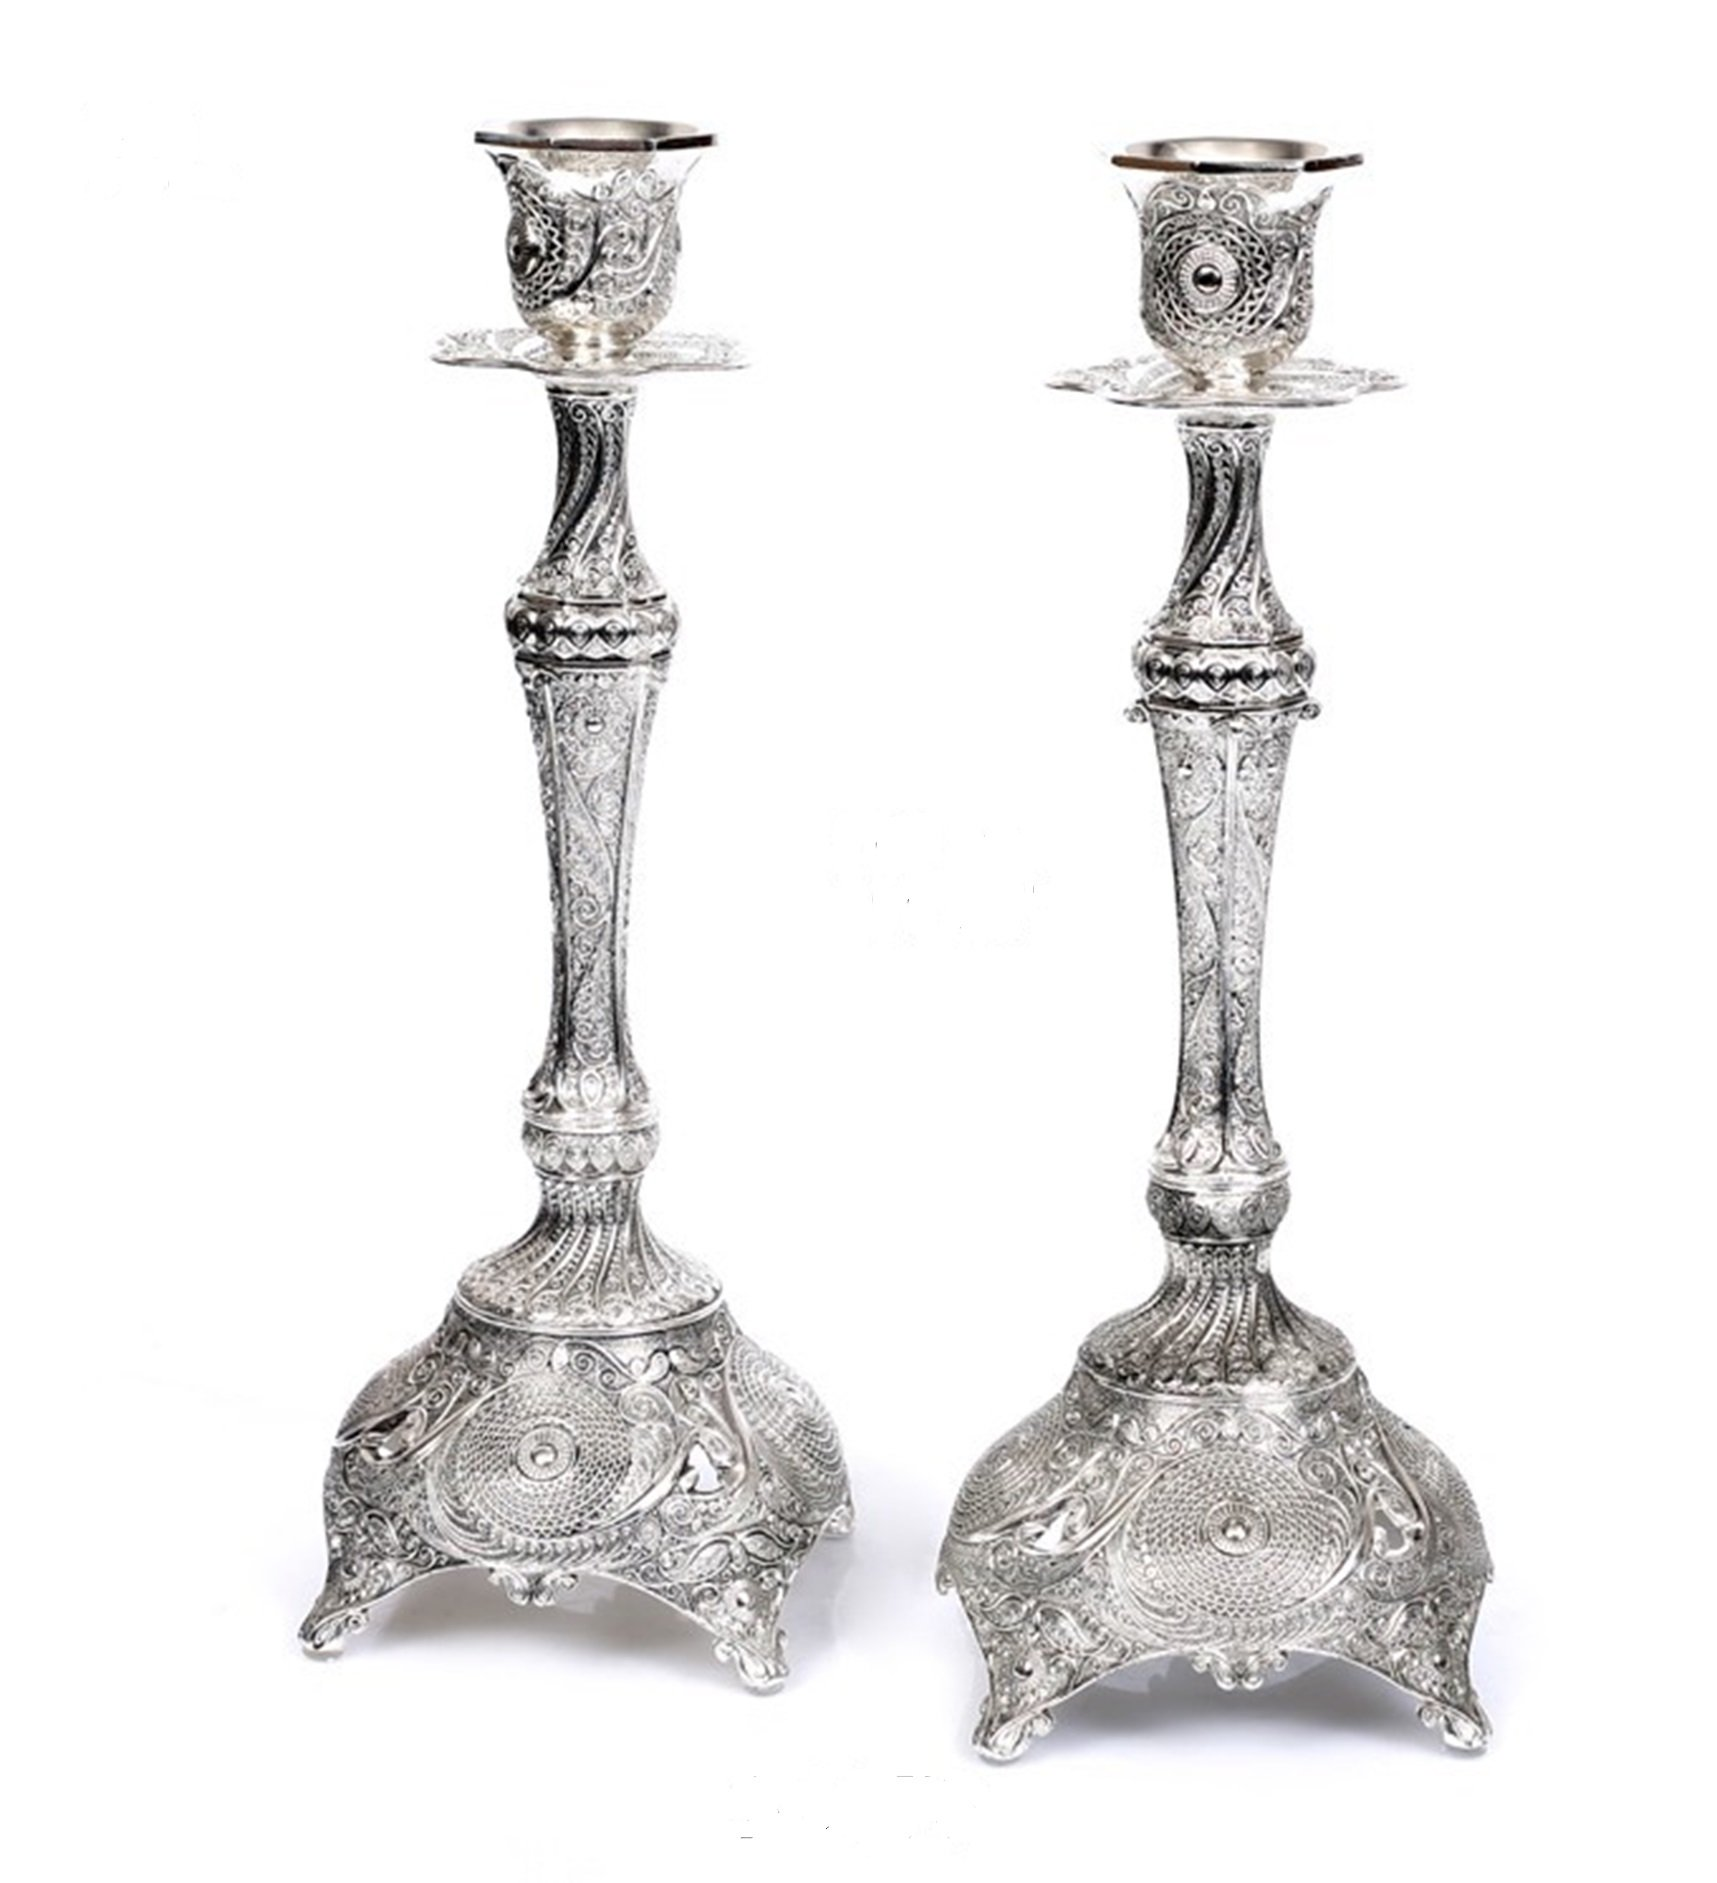 Cheap Modern Silver Candlesticks Find Modern Silver Candlesticks Deals On Line At Alibaba Com